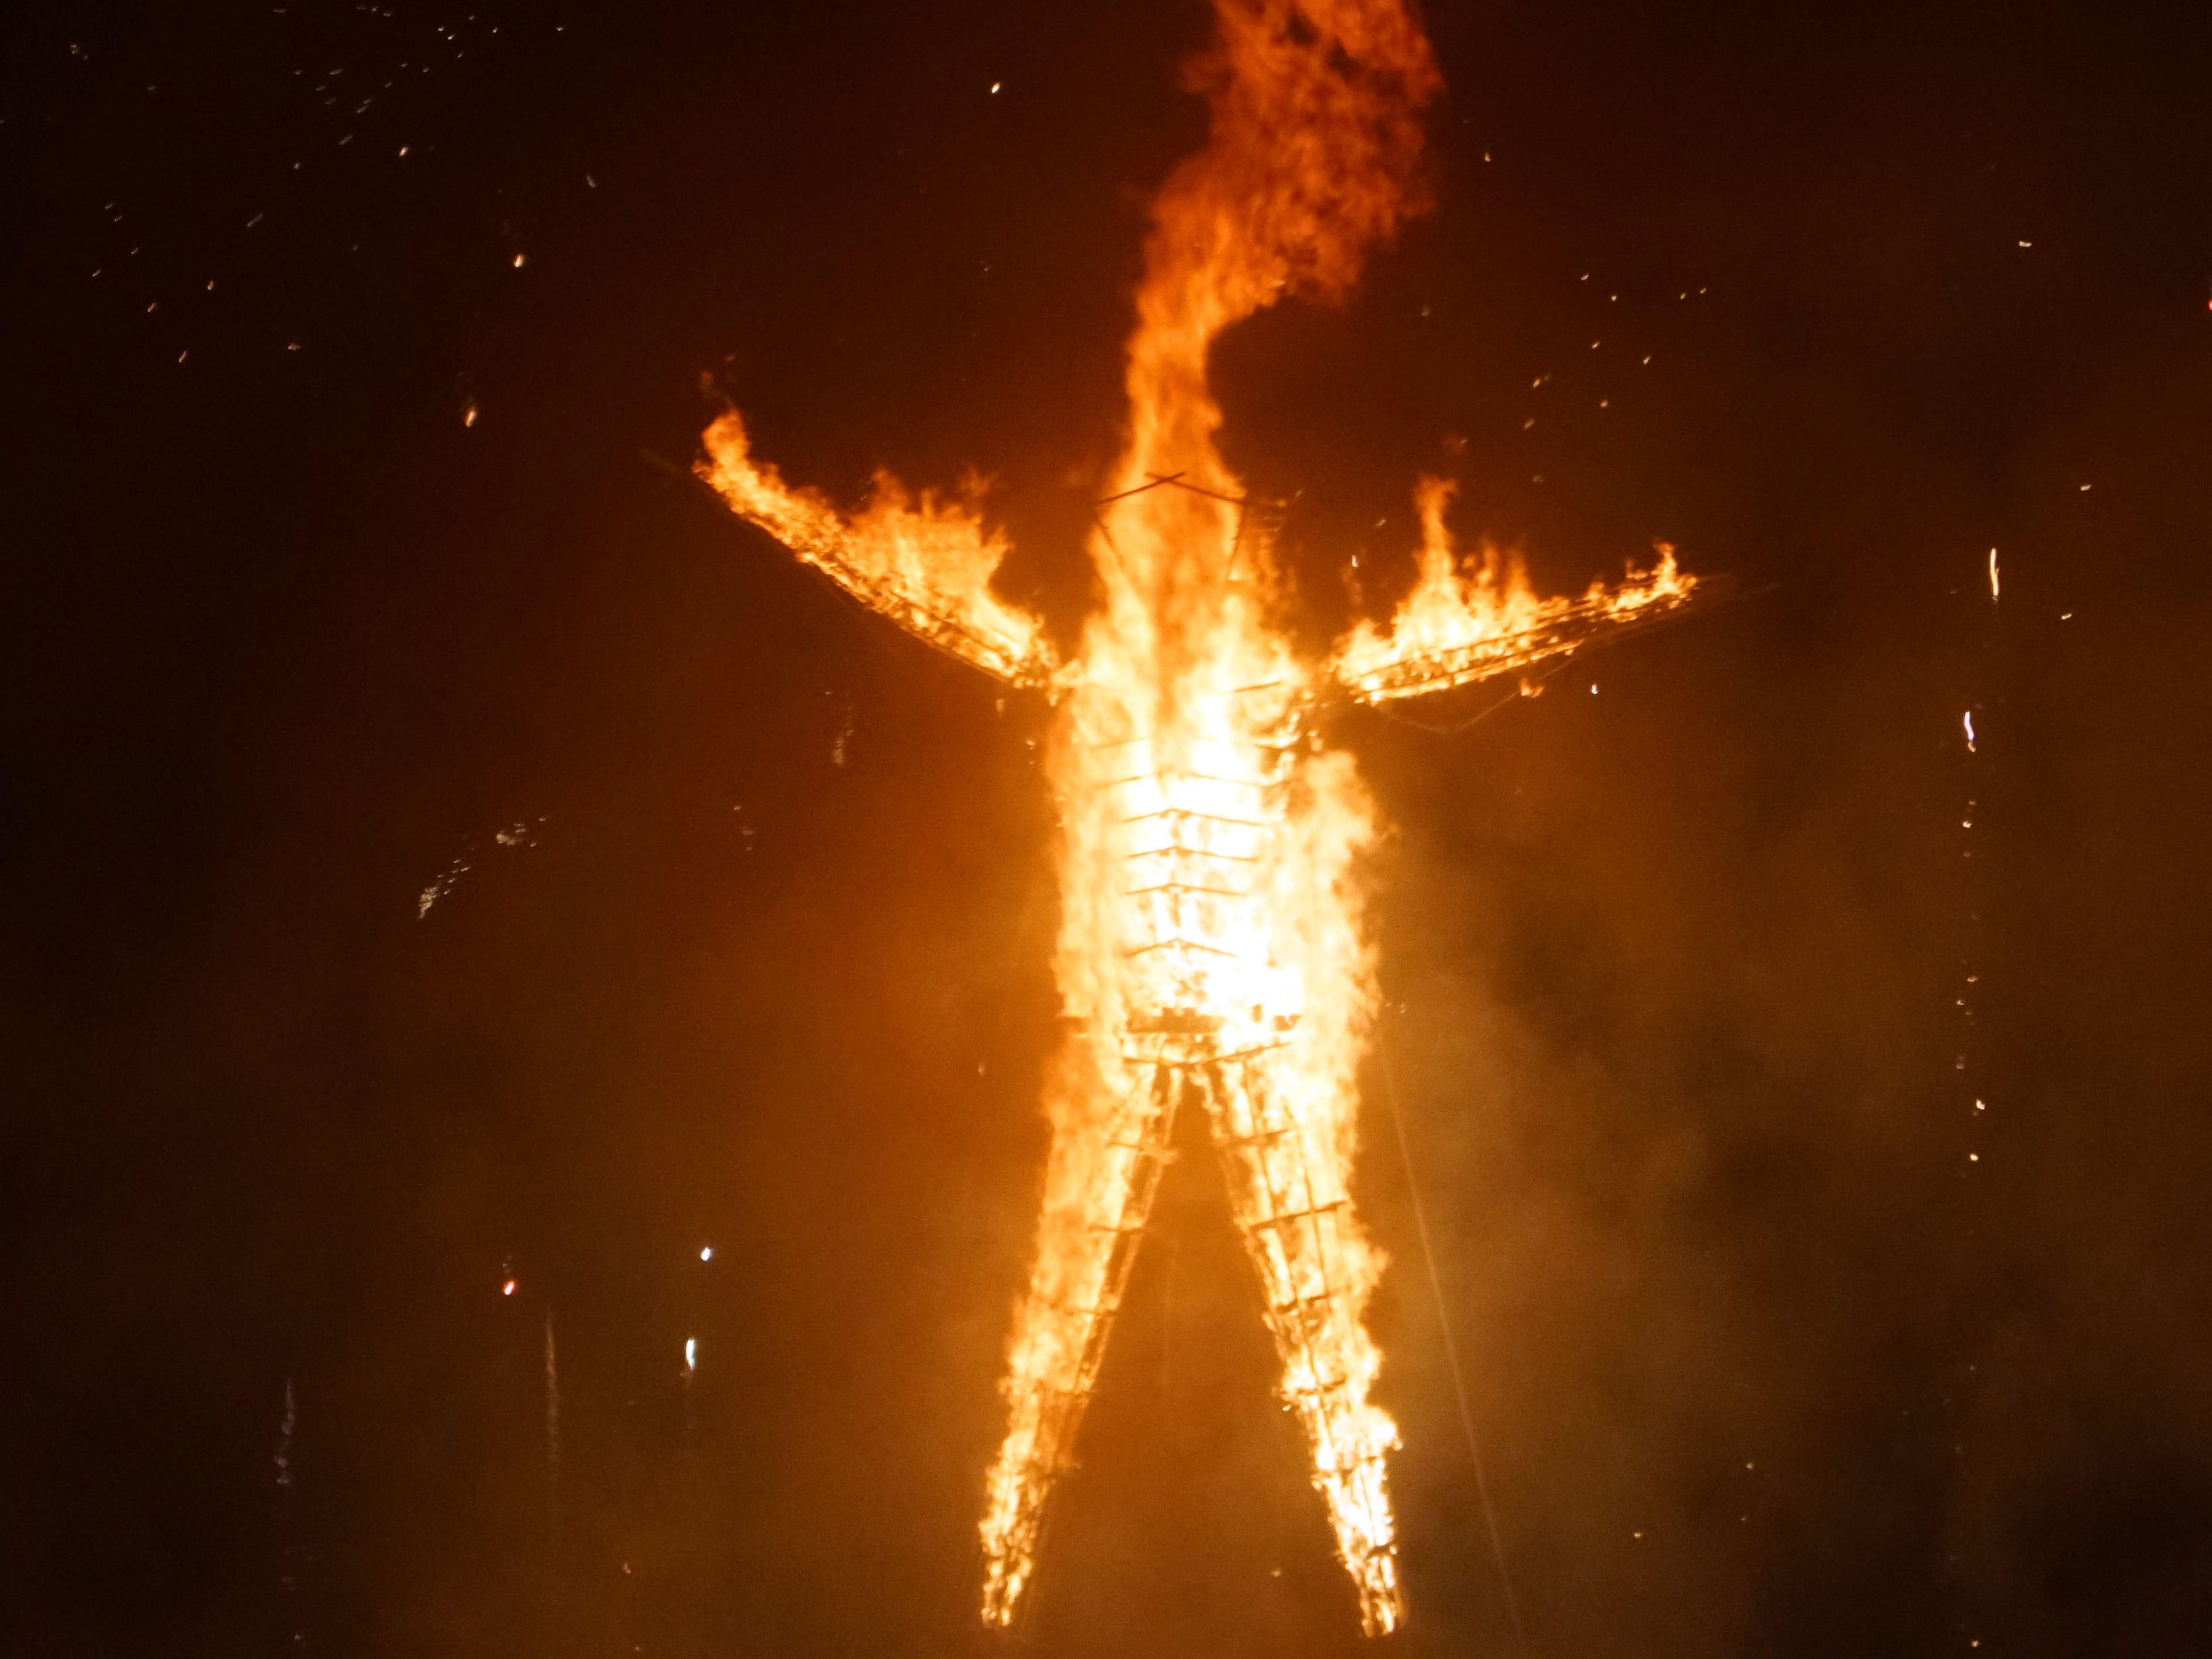 The approximately 100-foot-tall Man burns on Saturday night during a raucous celebration at Burning Man.